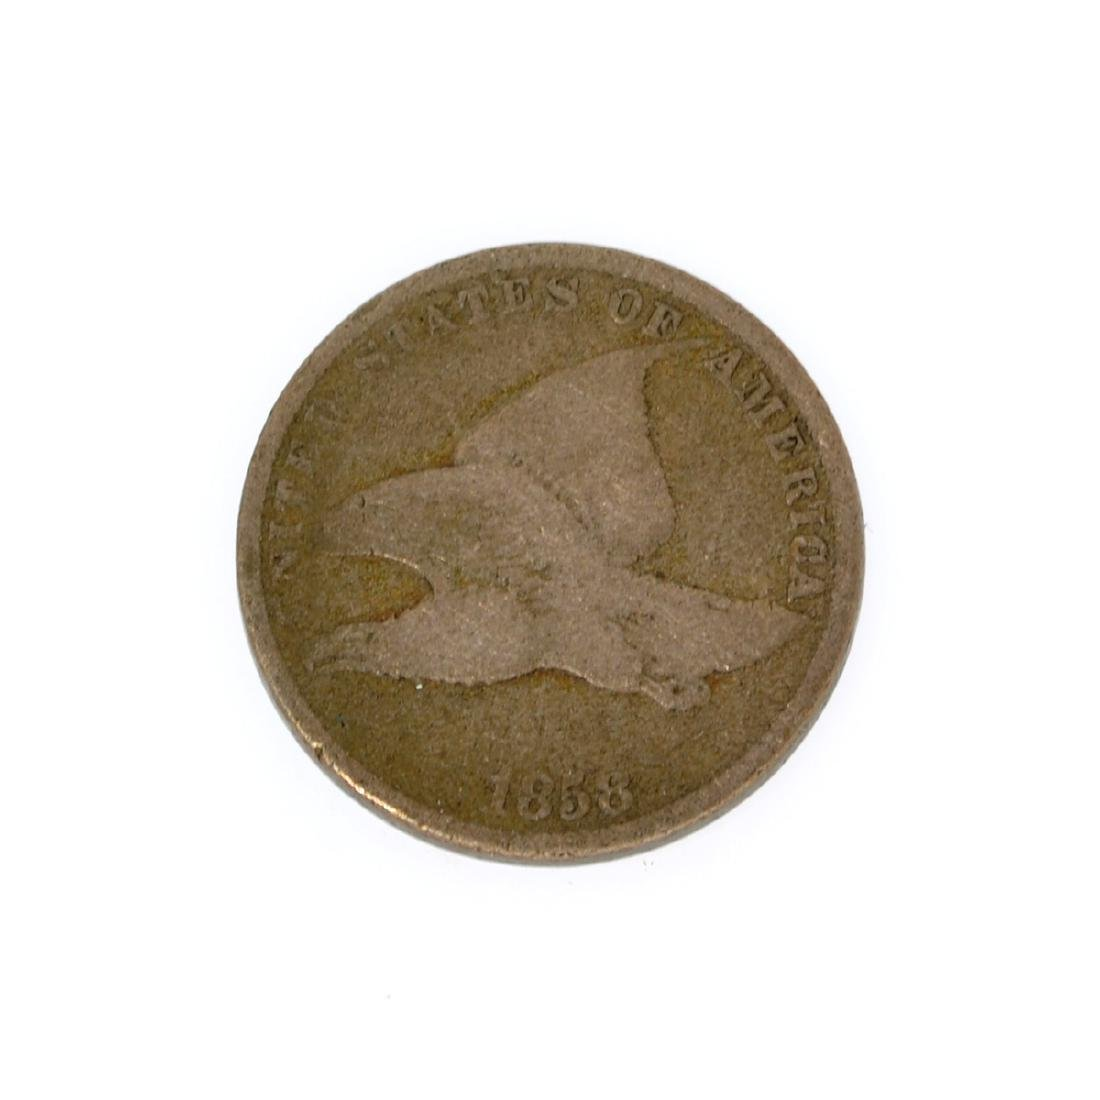 Rare 1858 Small Letters Flying Eagle One Cent Coin